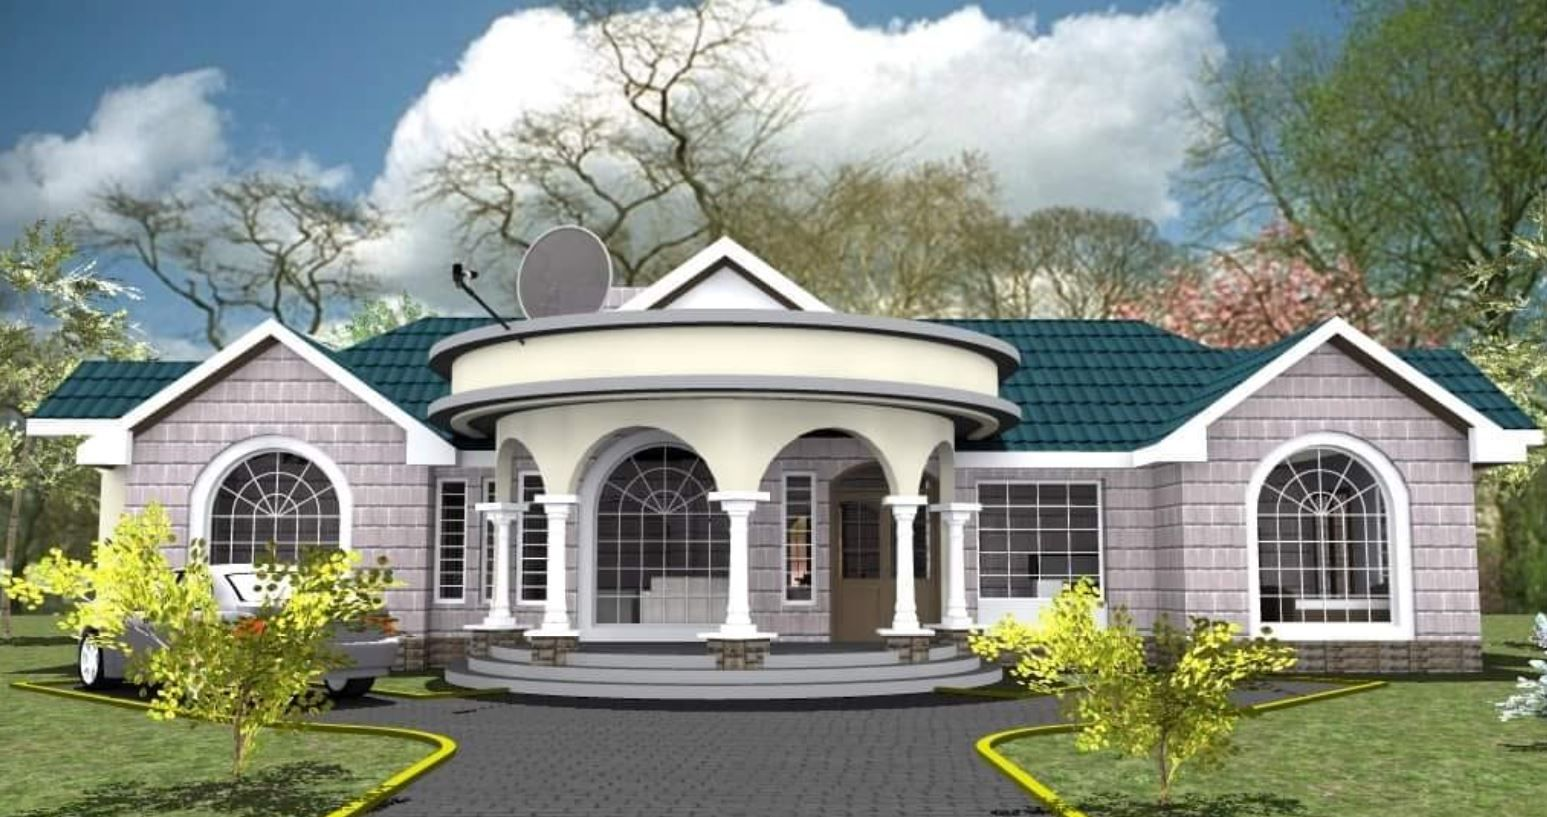 Where To Buy And Sell Modern House Designs In Kenya House Designs In Kenya Modern Bungalow House Design House Design Pictures